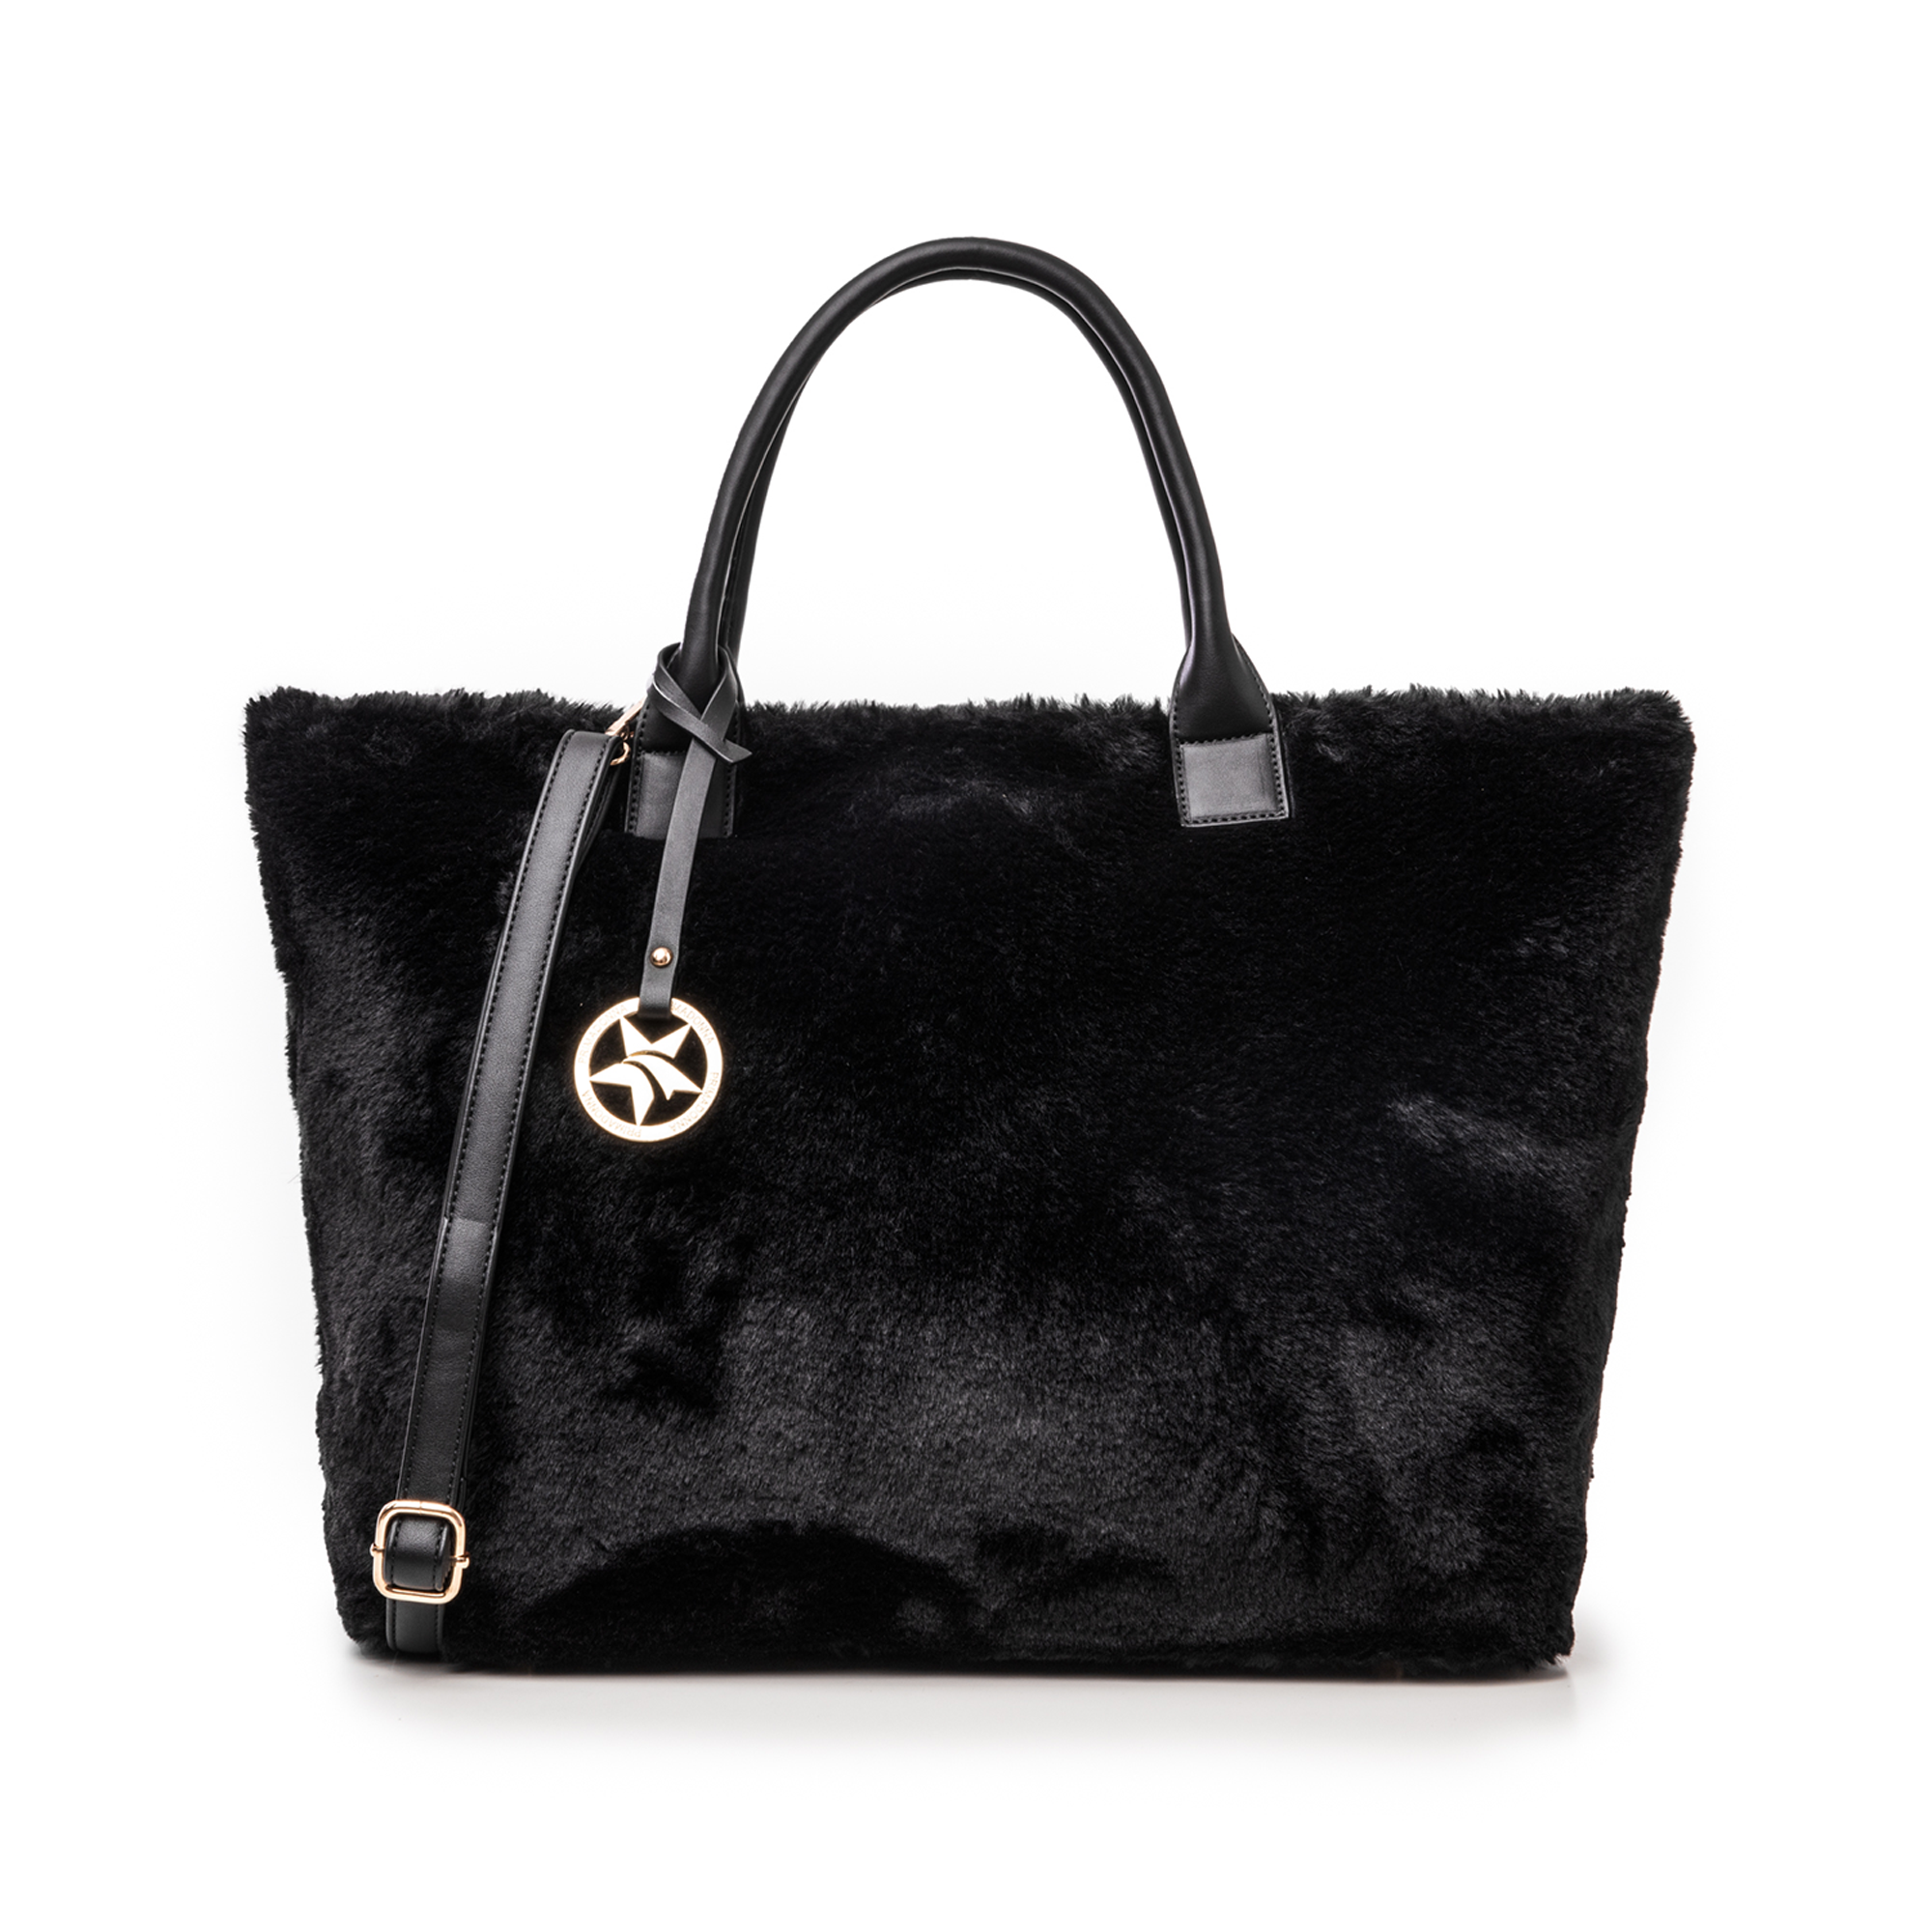 Borsa nera in eco-fur